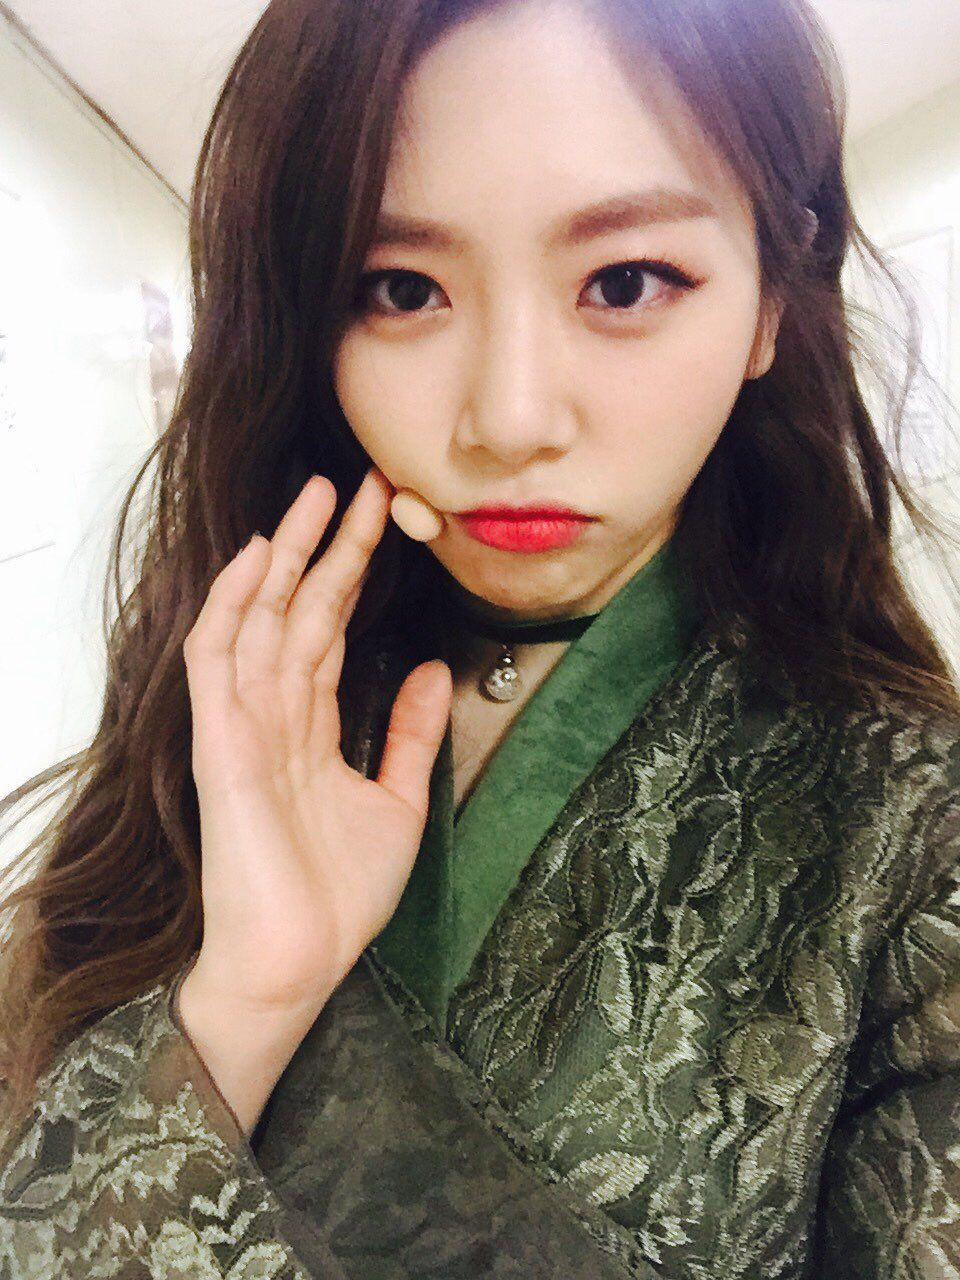 DREAMCATCHER - JiU | Dreamcatcher | Pinterest | Kpop, Kpop ...